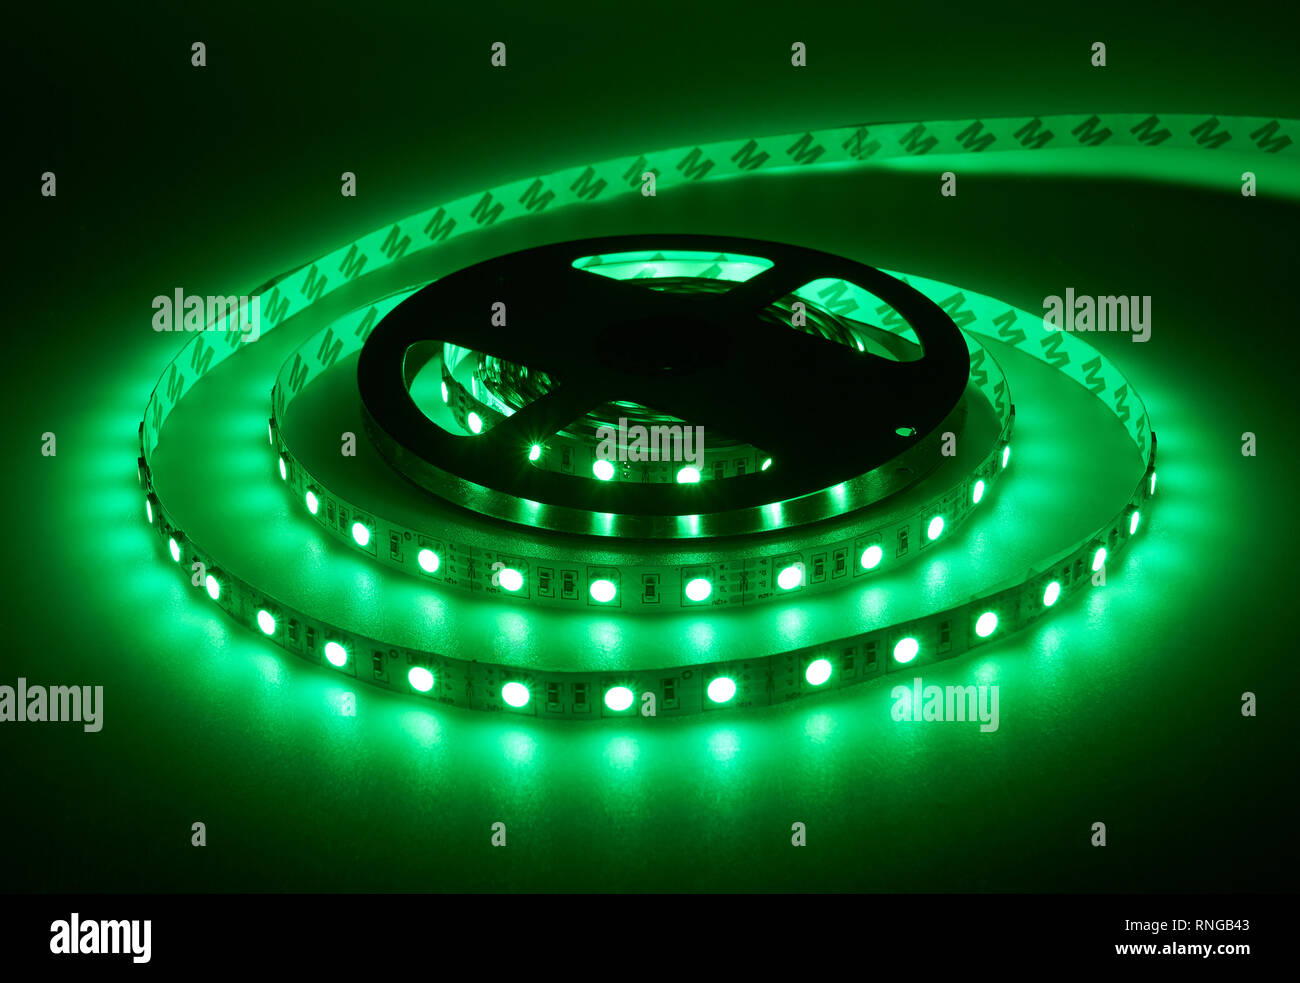 Diode Lighting Diode Strip Led Lights Tape Reel Stock Photo 237002531 Alamy